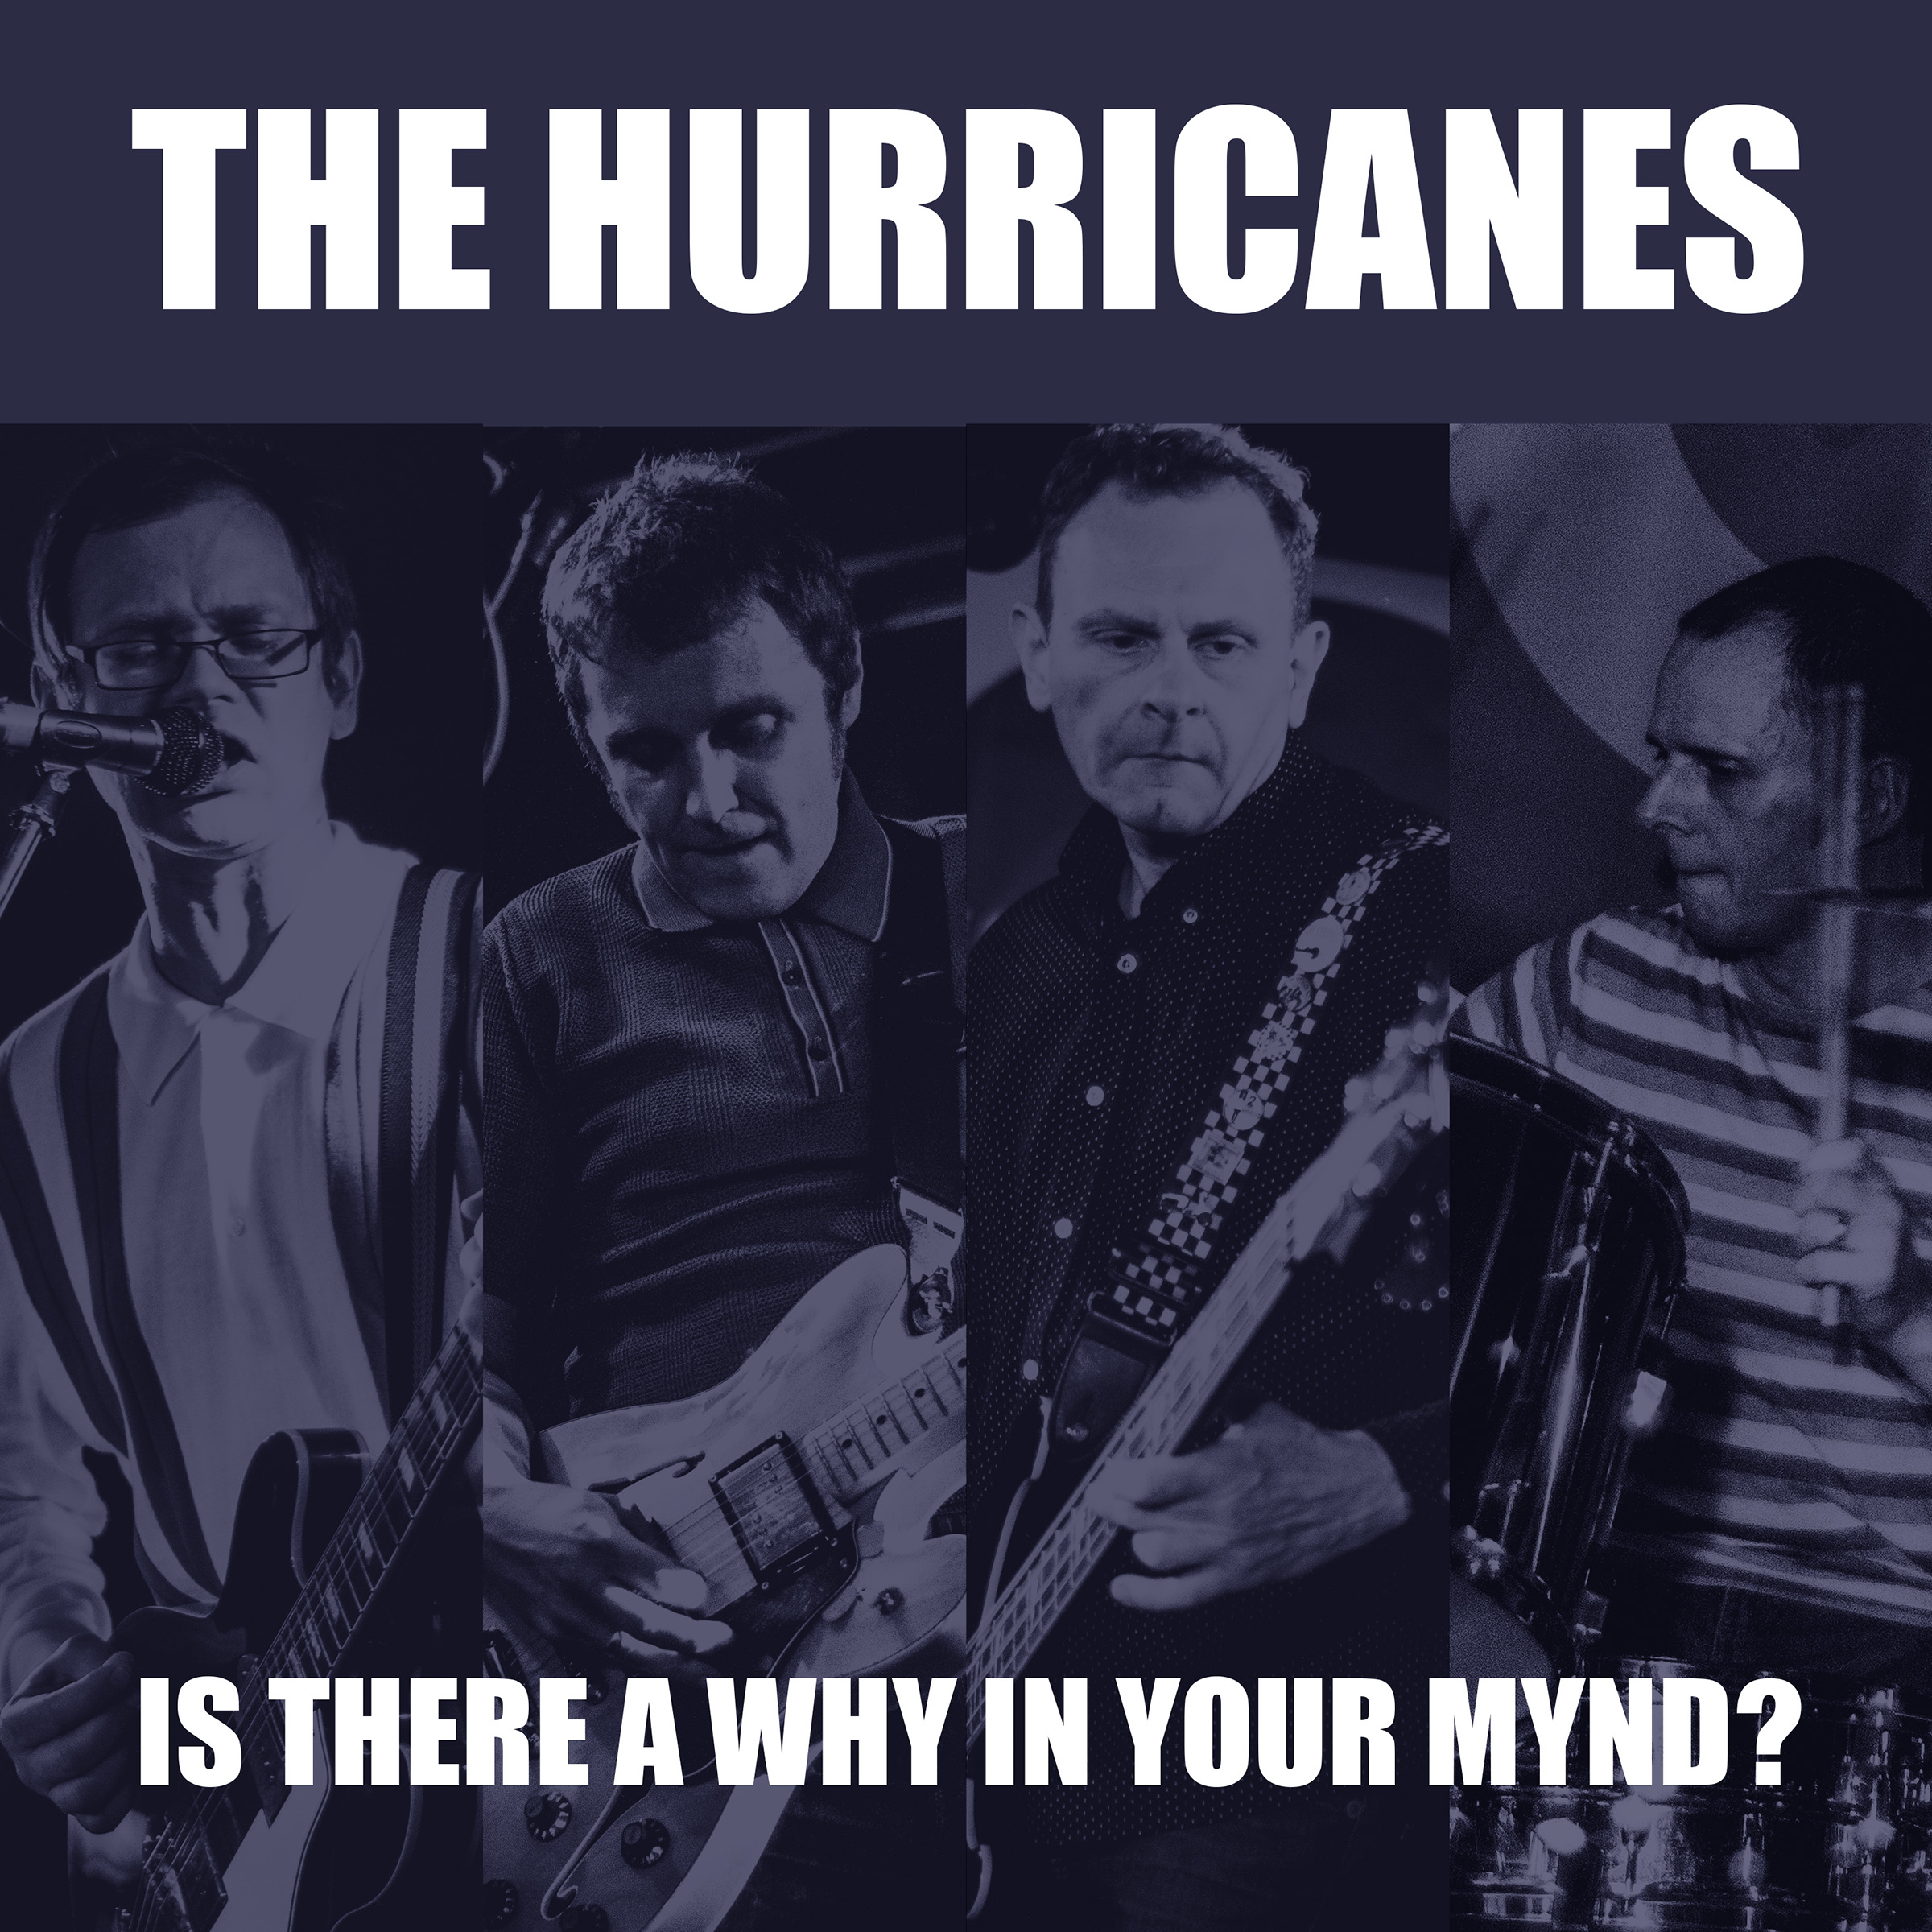 Is There A Why In Your Mynd? - The Hurricanes